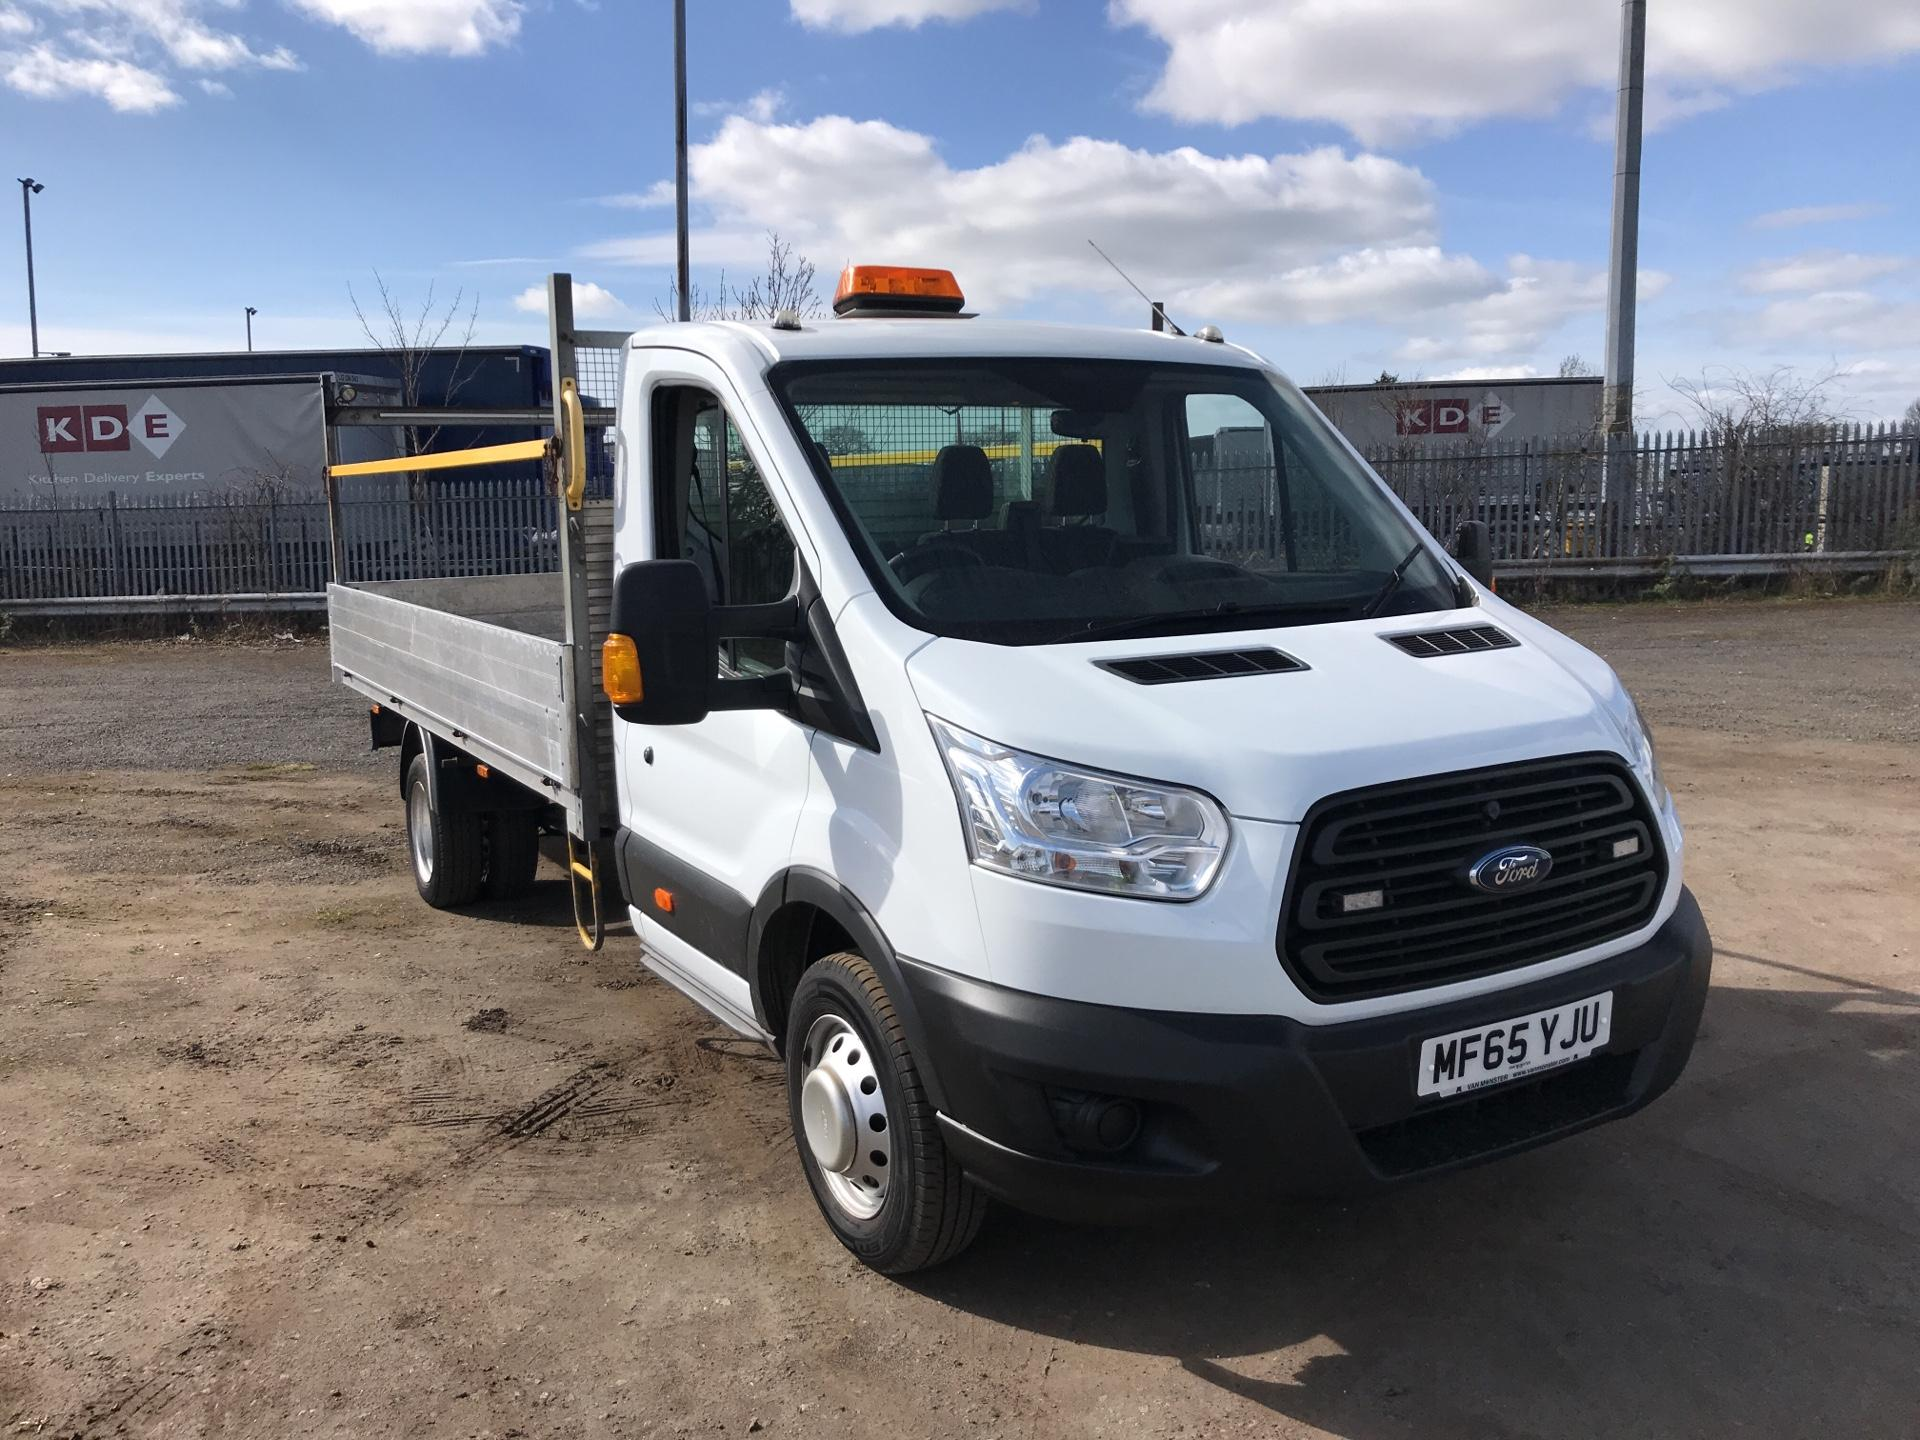 2015 Ford Transit 2015 Ford Transit 350 L4 DROP SIDE 125PS EURO 5 (MF65YJU) Image 1